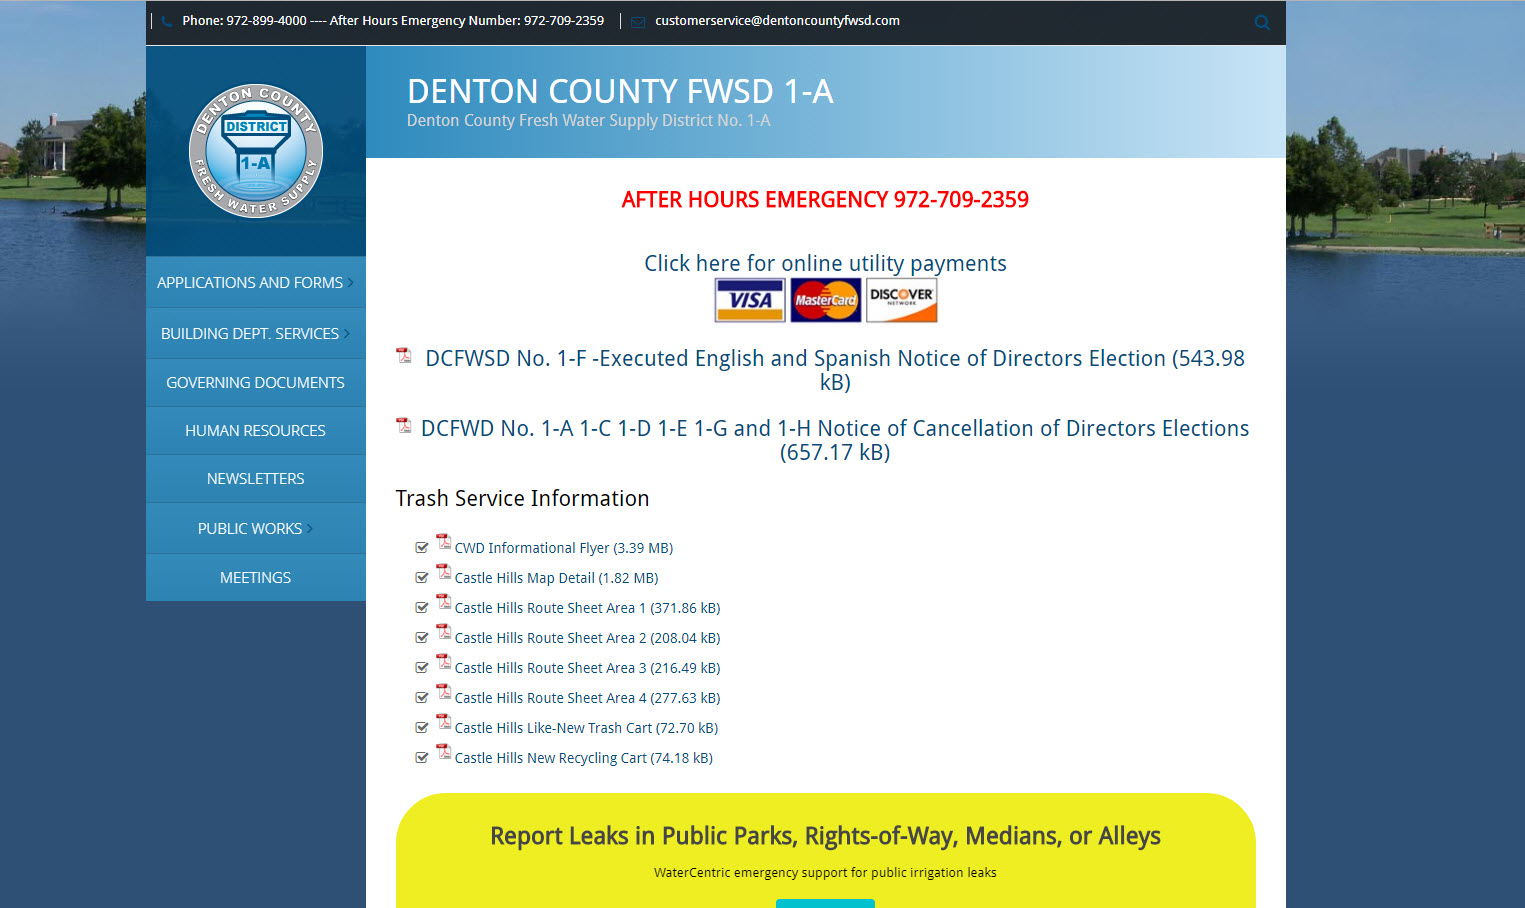 Denton County Fresh Water Supply District No. 1-A